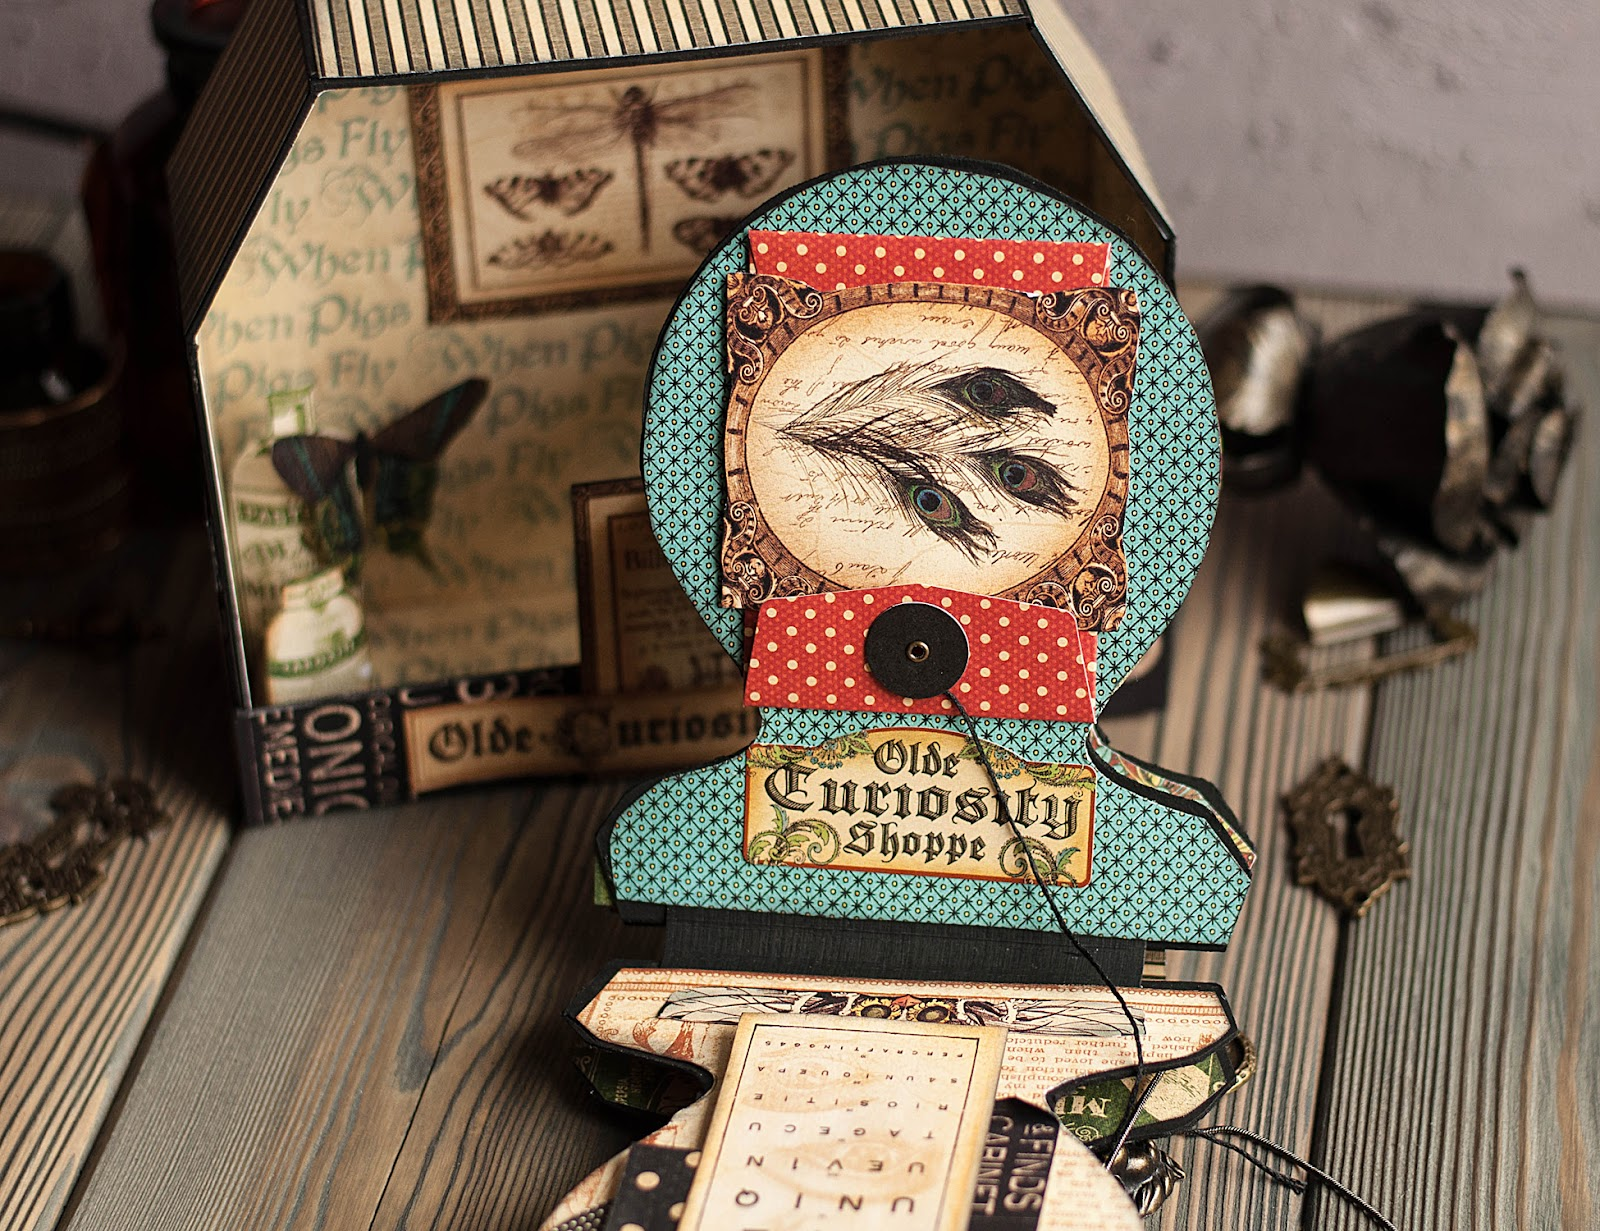 Olde Curiosity Shoppe-Album and Shoppe-tutorial by Lena Astafeva-products by Graphic 45-40.jpg